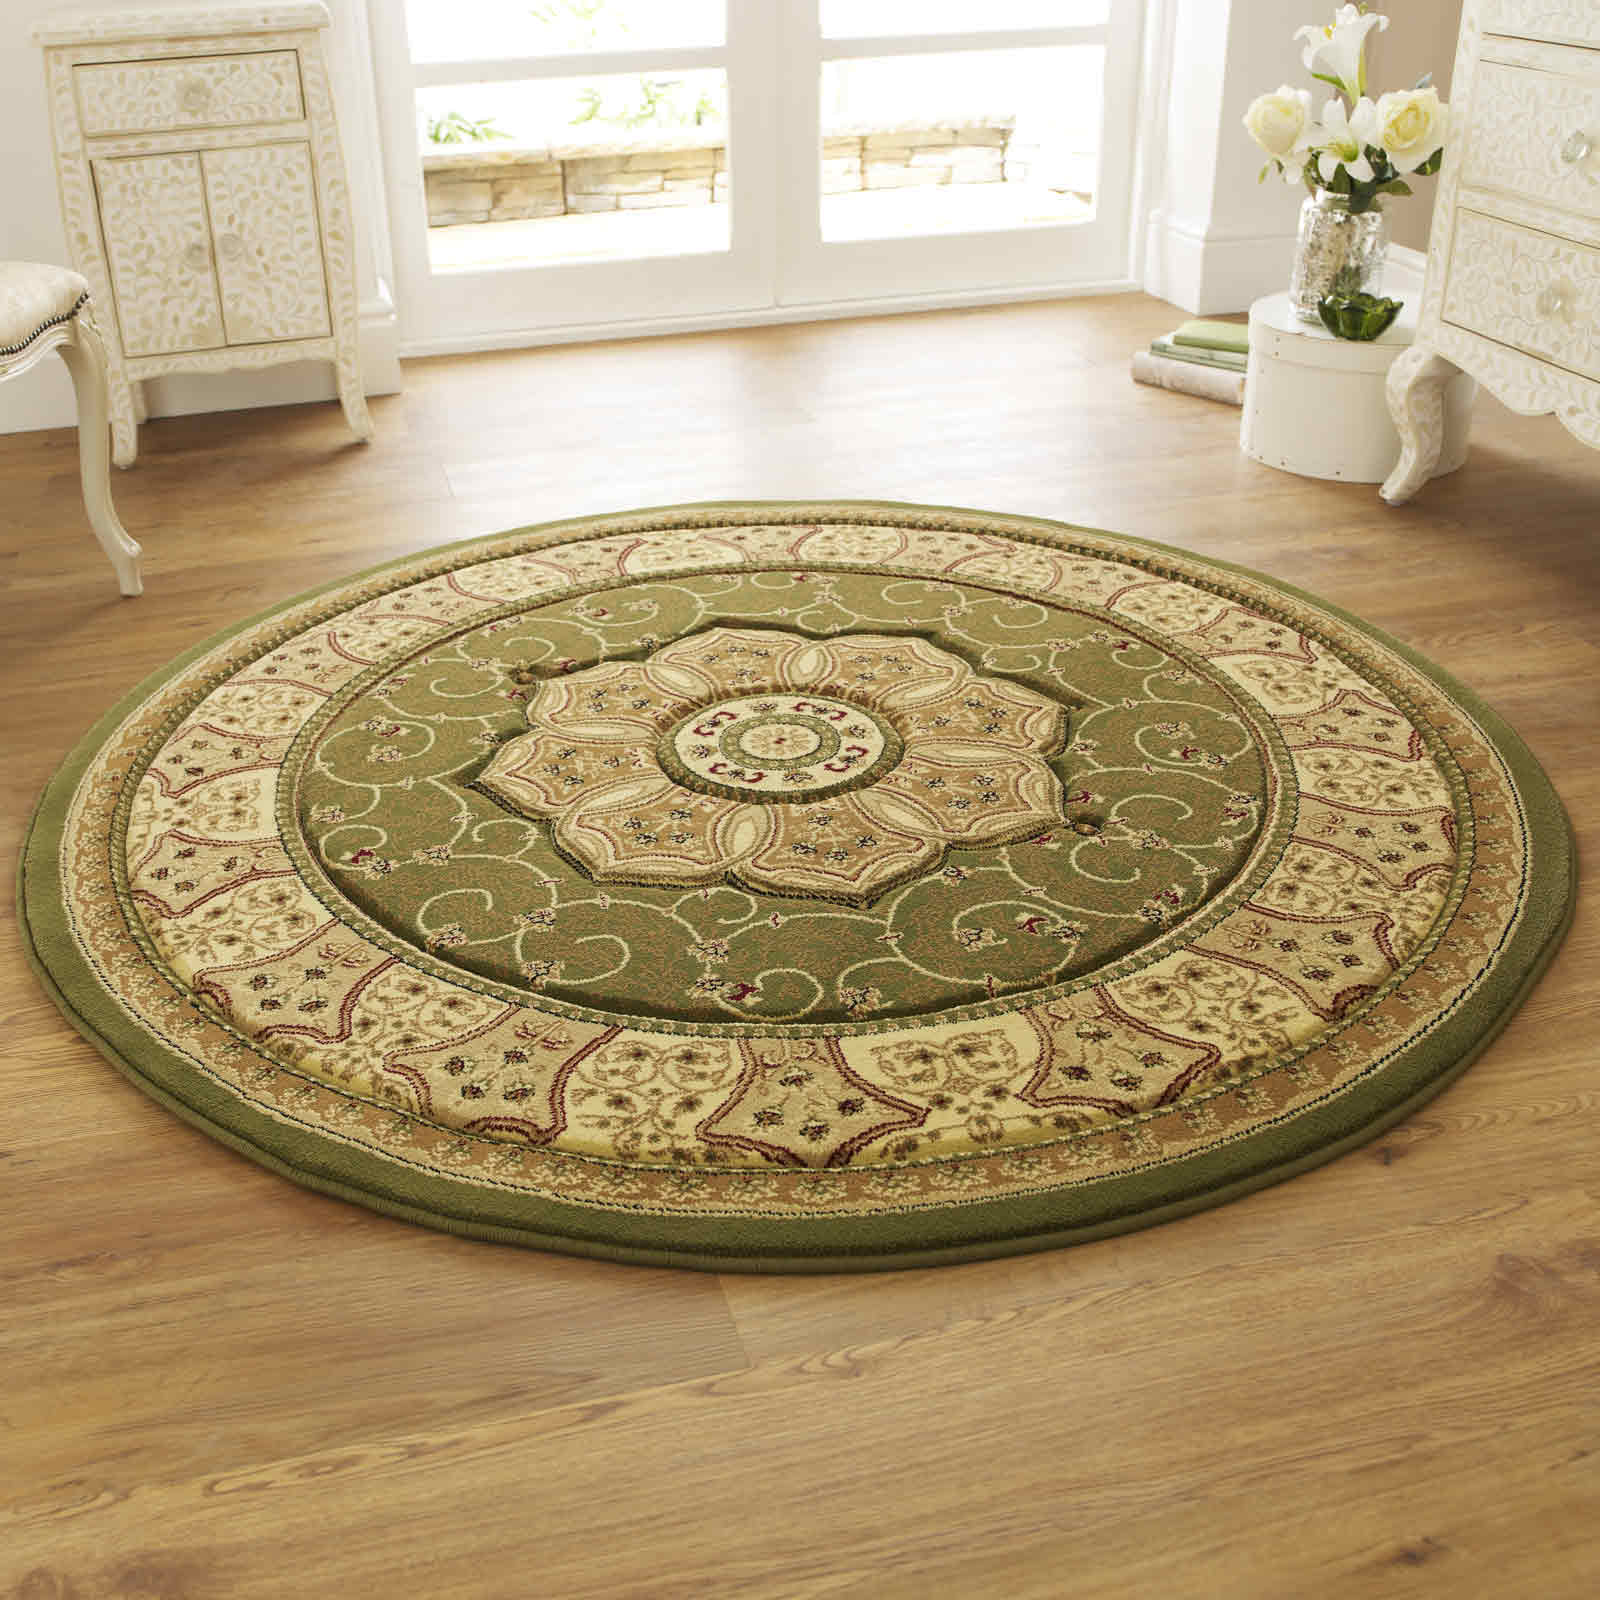 Heritage 4400 Circular Rugs In Green